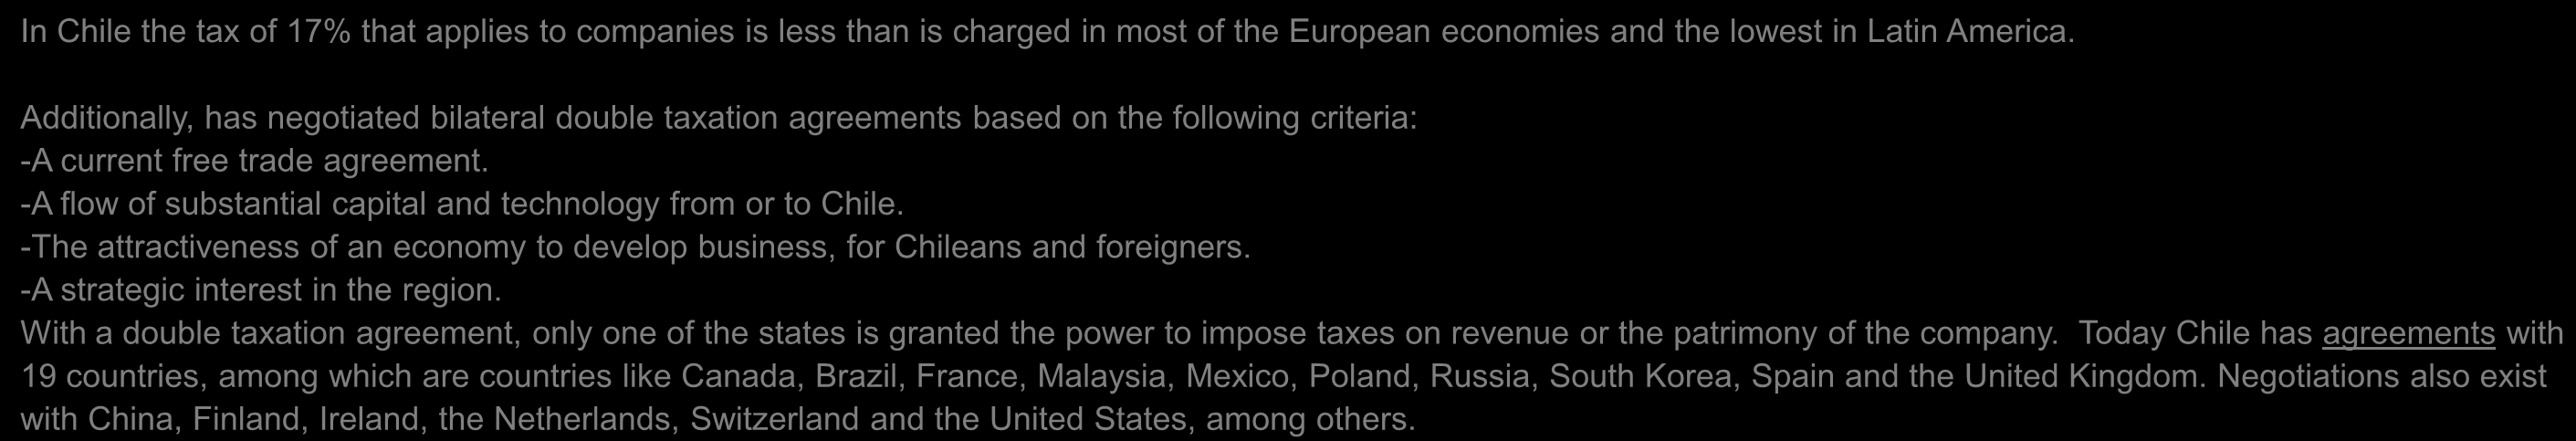 Low Corporate Tax:The taxes in Chile are the lowest in Latin America and well below many European countries.